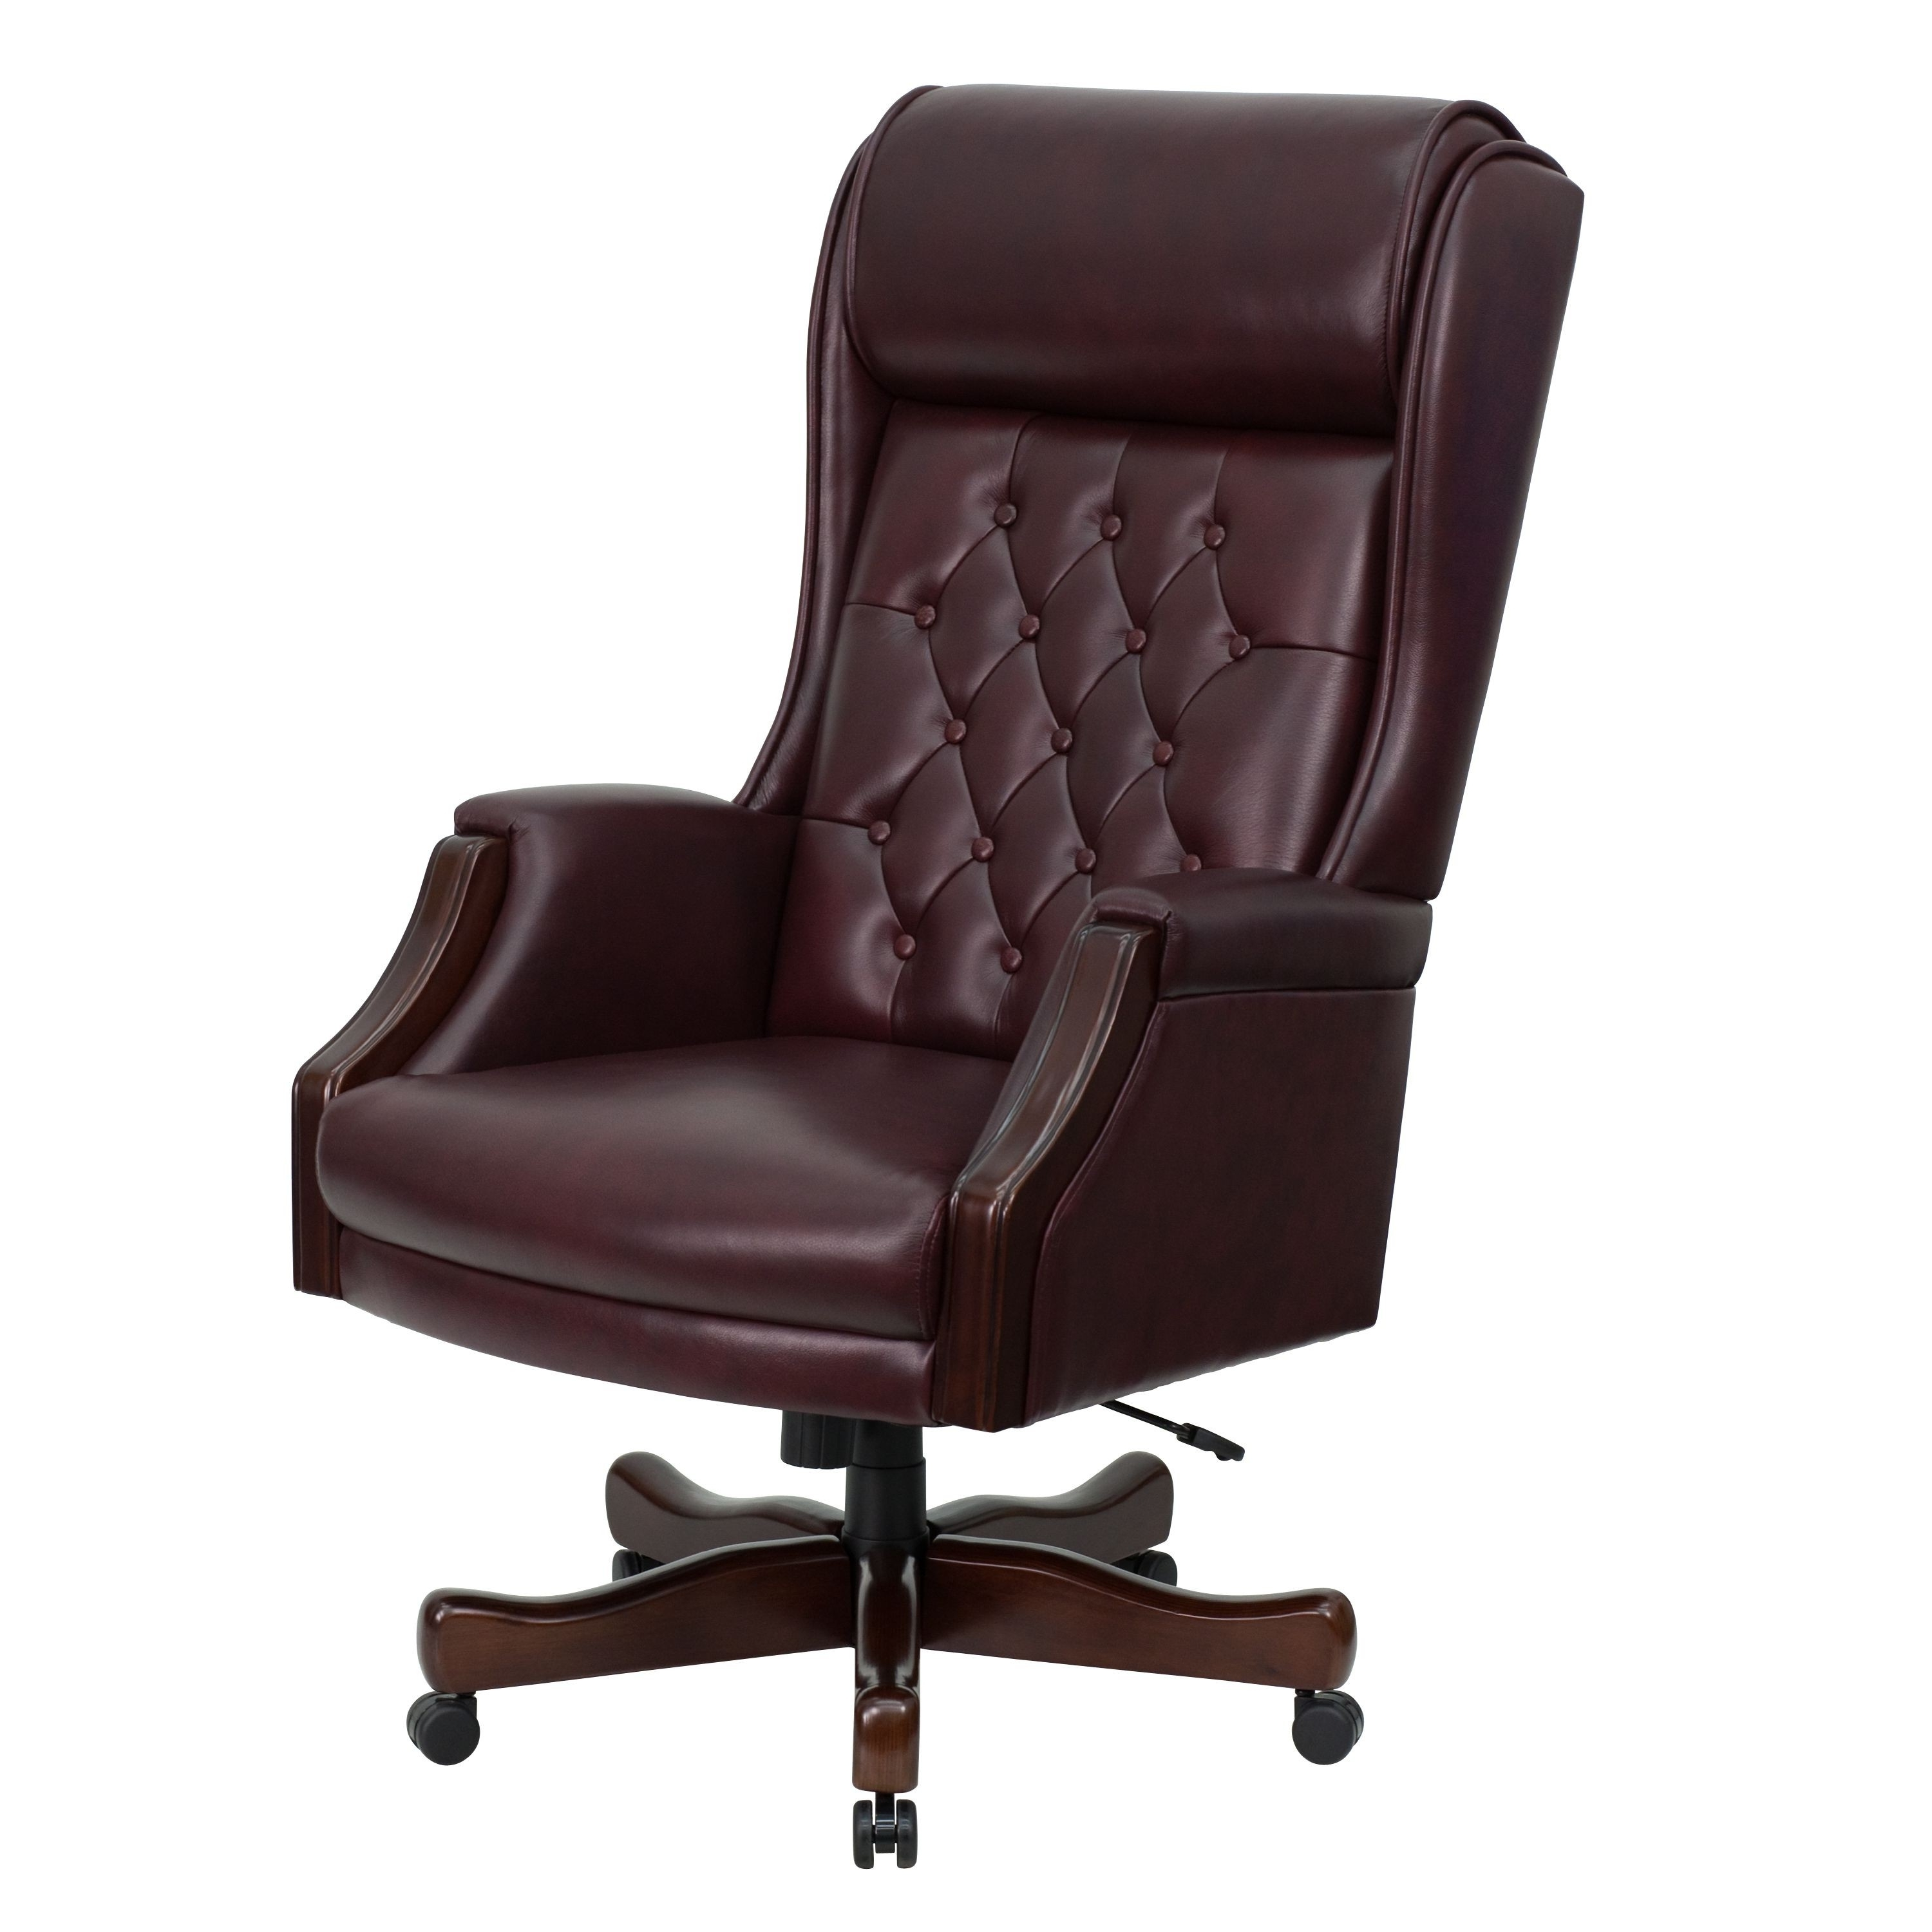 Widely Used Tan Brown Mid Back Executive Office Chairs Intended For Flash Furniture Kc C696Tg Gg Tufted High Back Executive Leather (View 19 of 20)